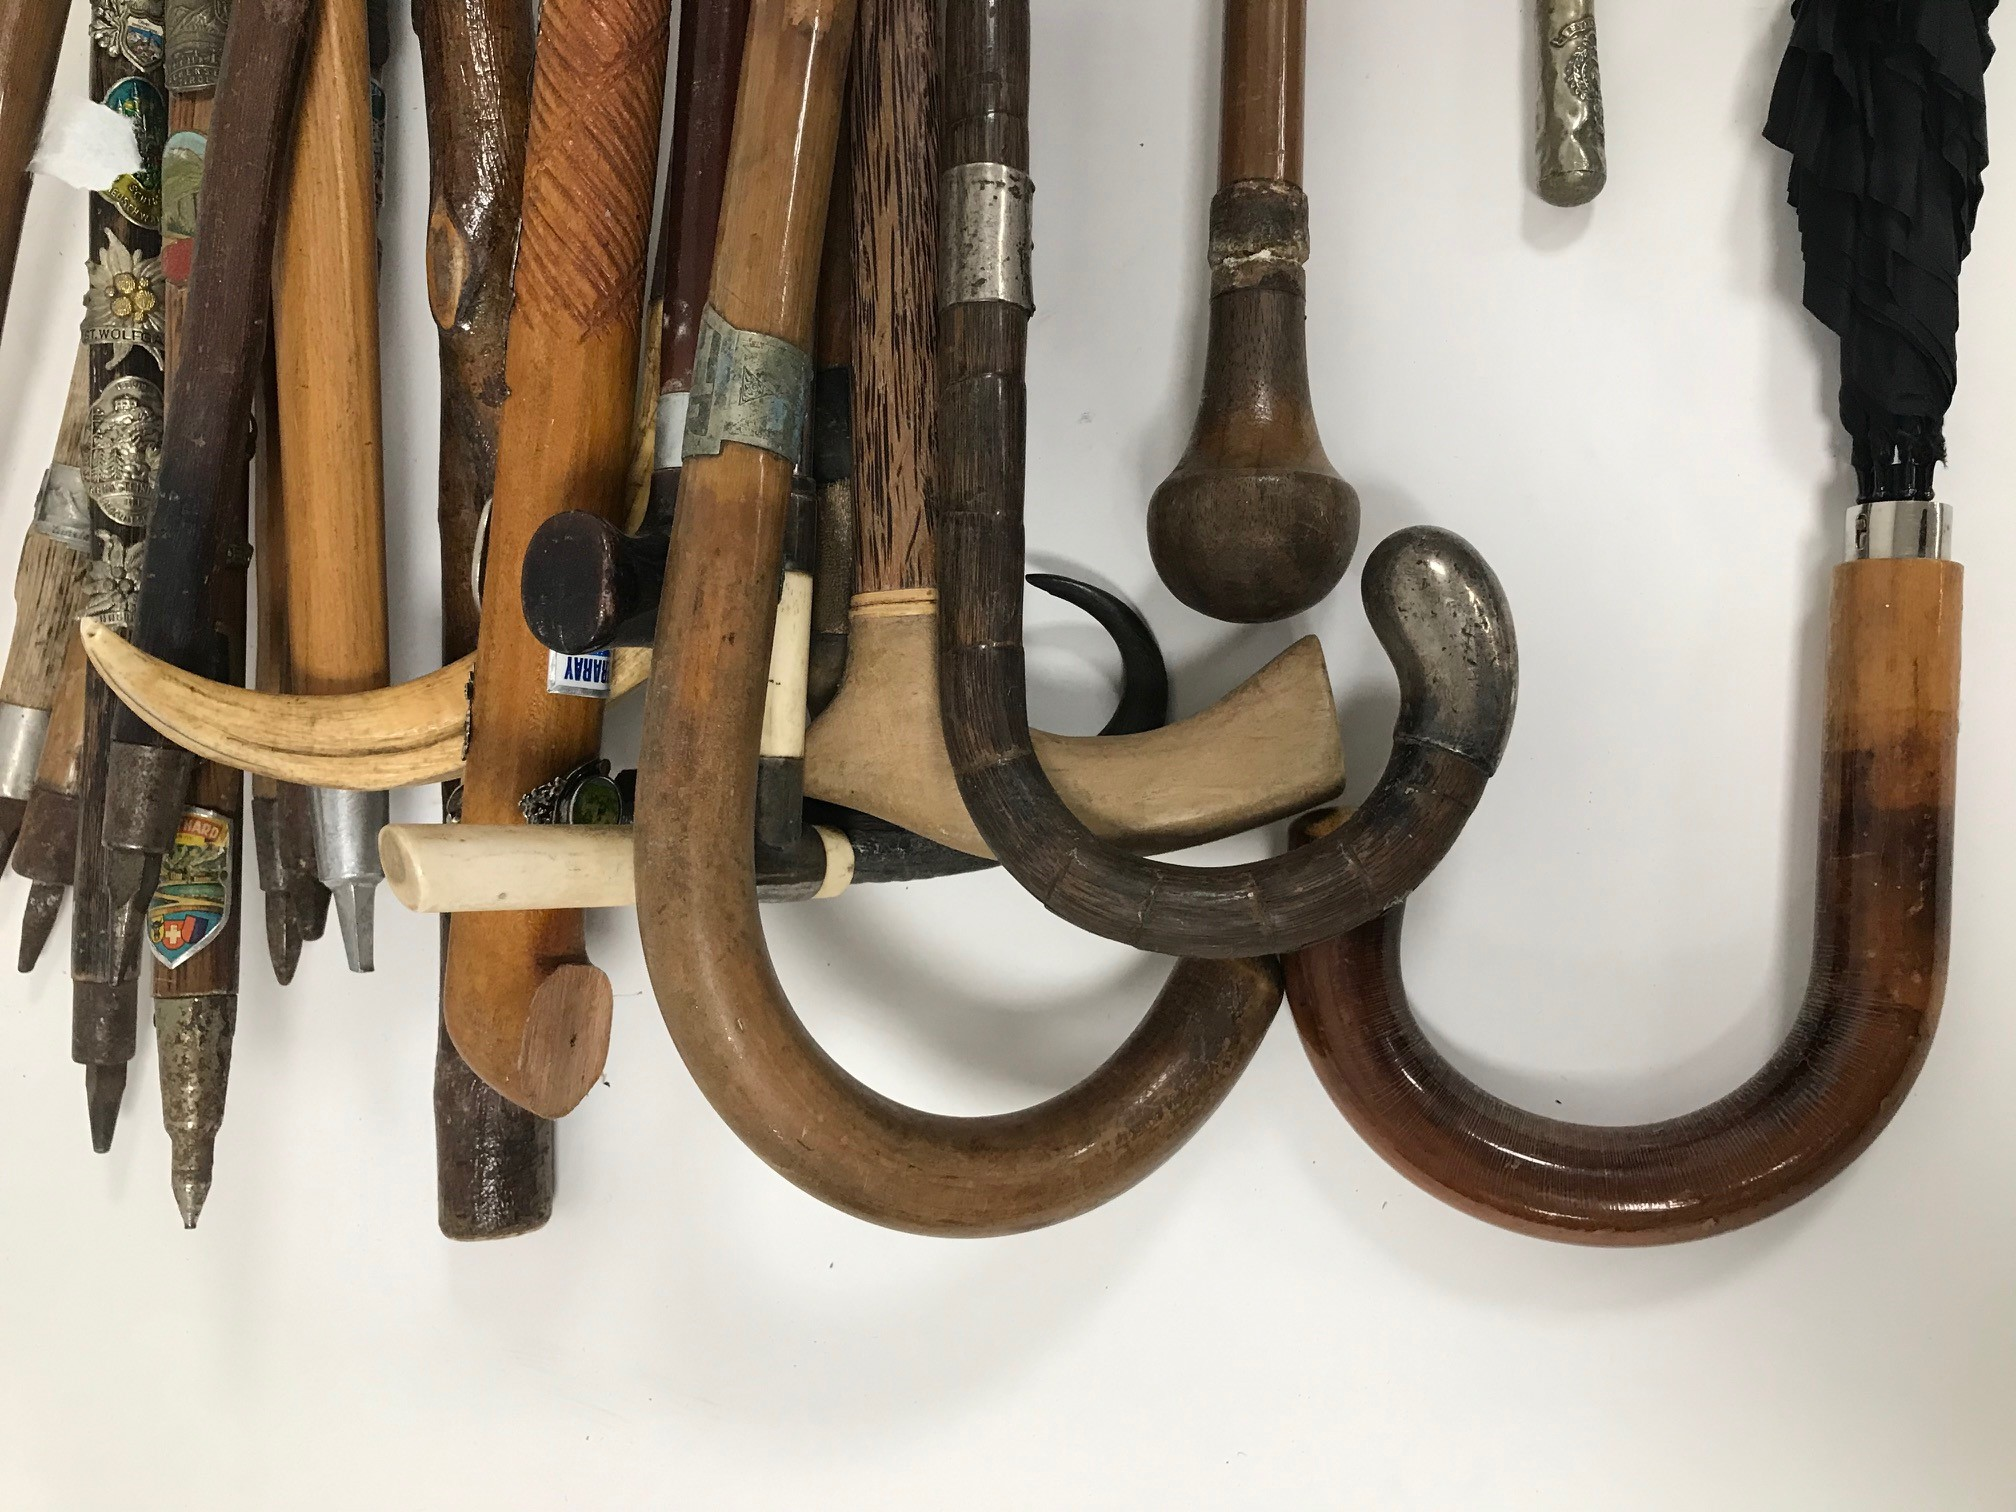 A collection of walking stick and canes, including a walking stick with removeable shaft to reveal - Image 2 of 3